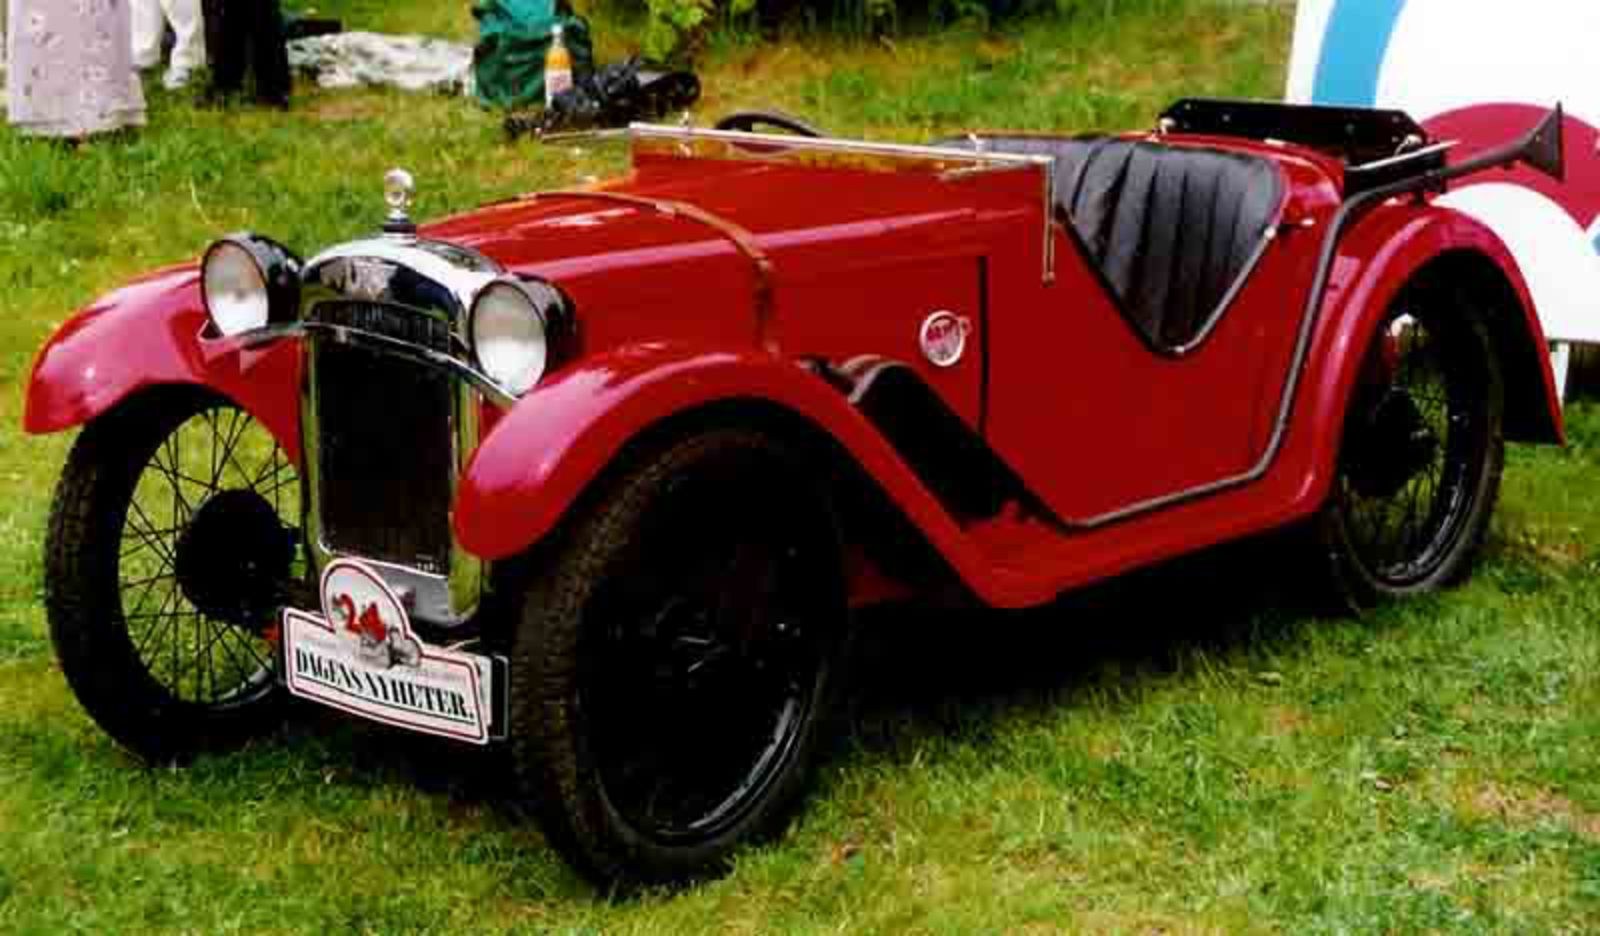 File:Austin Seven Ulster 2-Seater Sports 1930.jpg - Wikimedia Commons